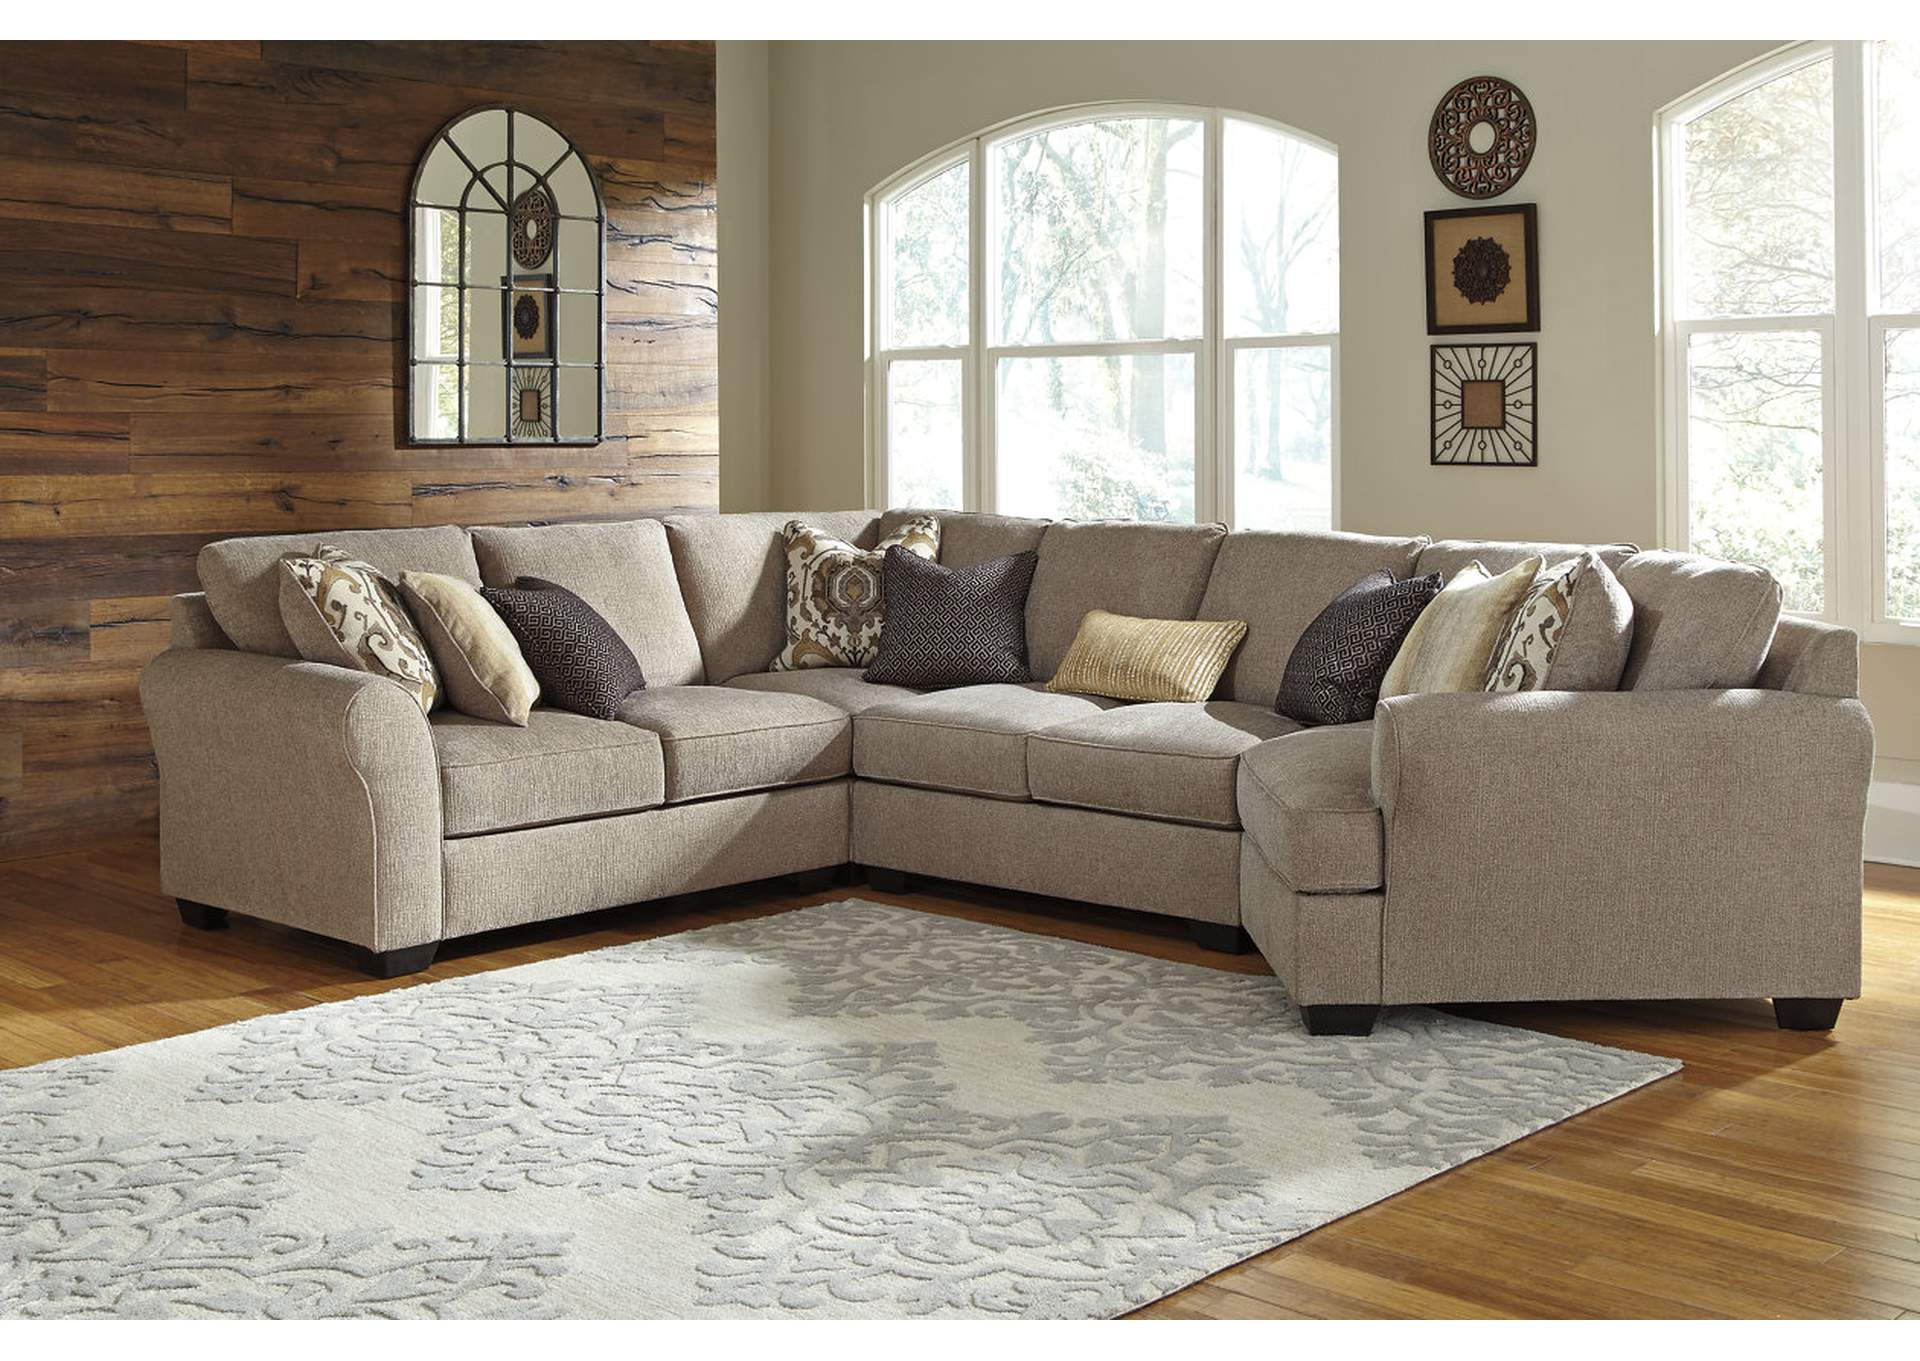 Pantomine Driftwood Sectional w/Right Facing Cuddler,Benchcraft